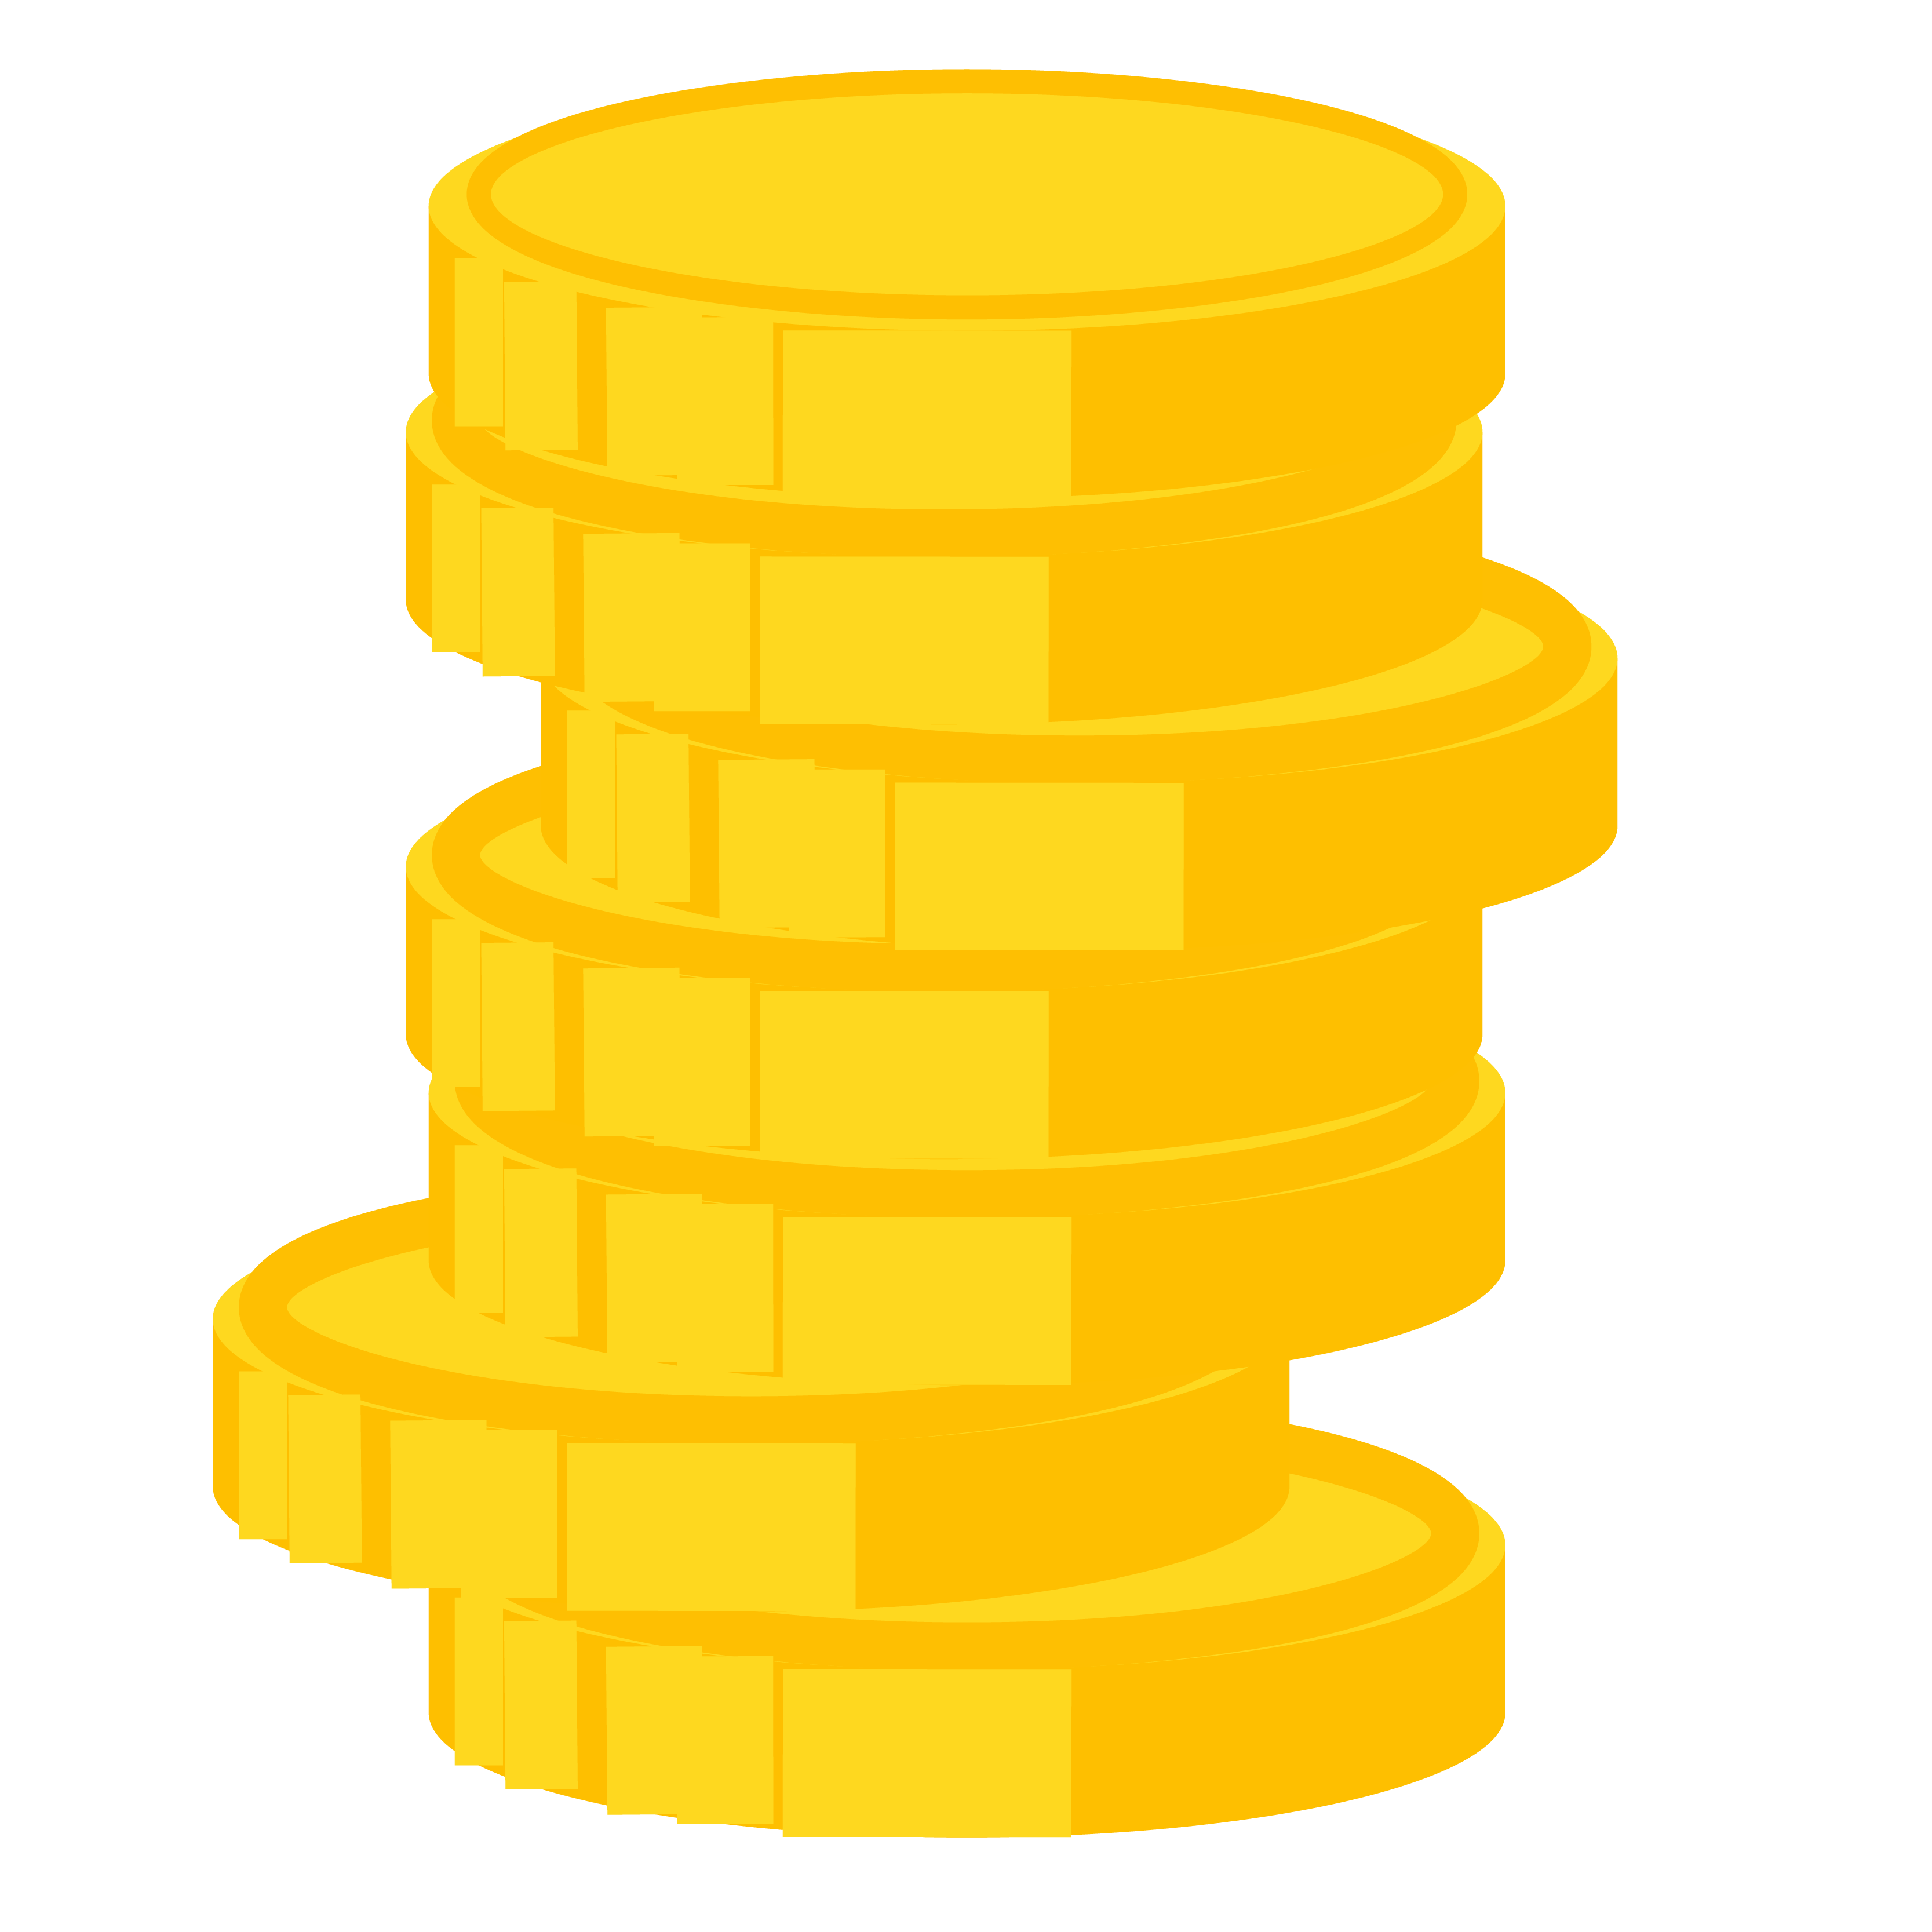 coins or cash stacked on top, price your job appropriately